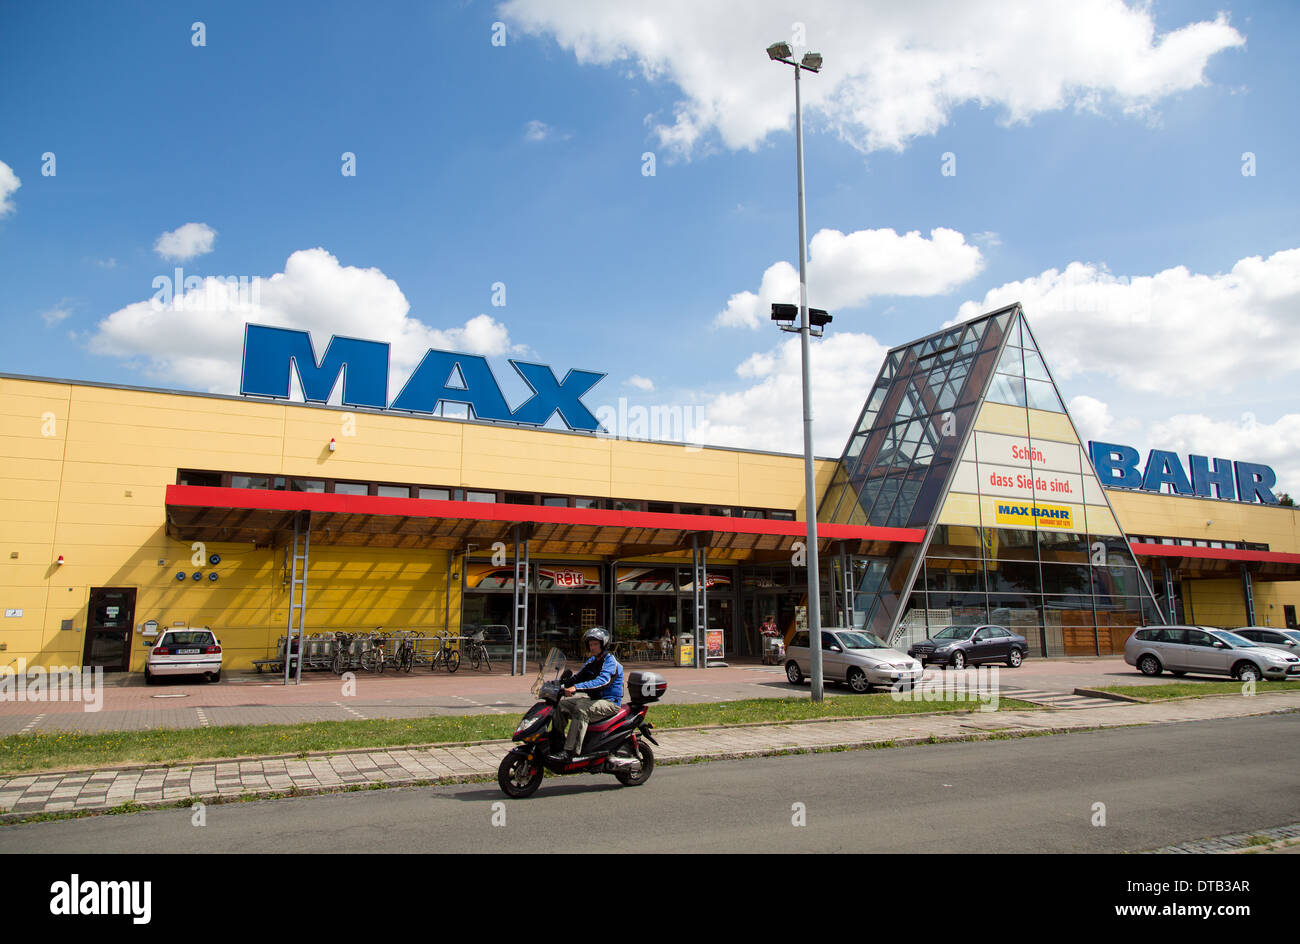 bremen, germany, hardware store chain max bahr stock photo: 66626975